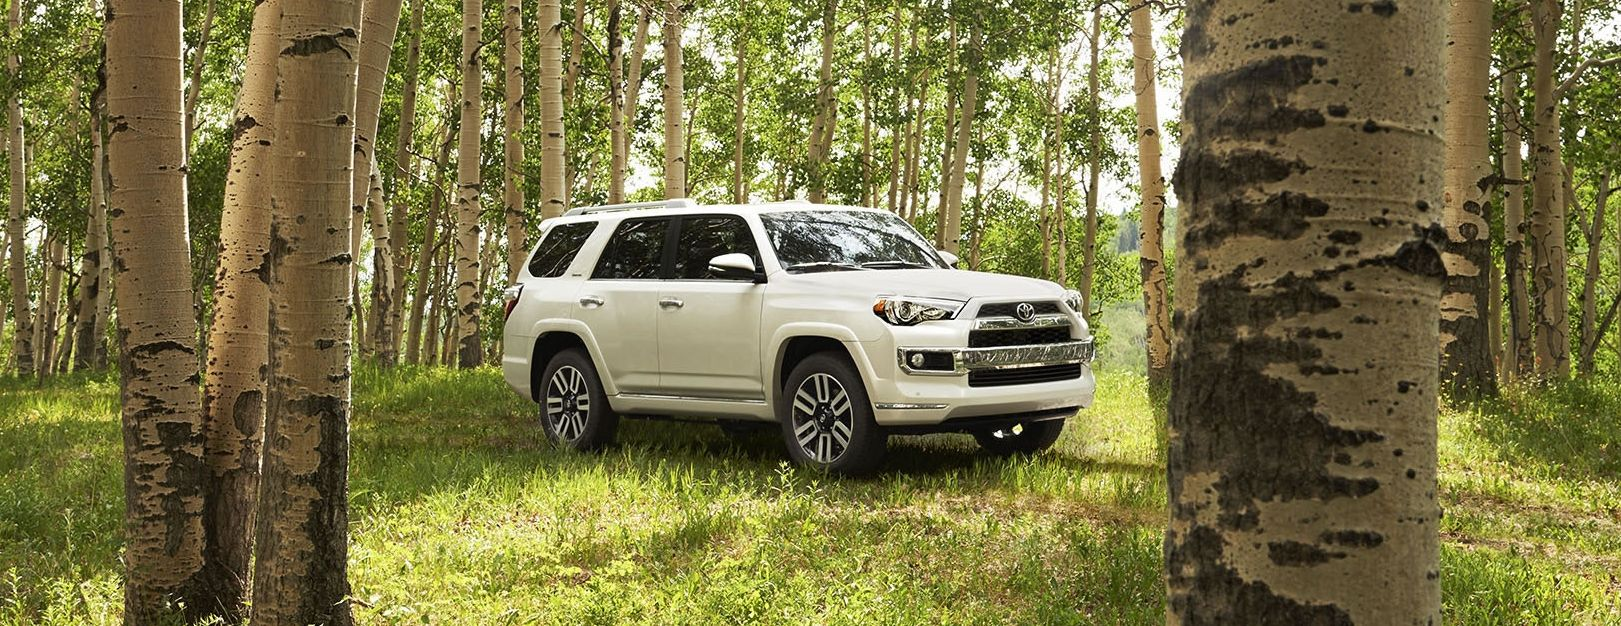 2019 Toyota 4Runner for Sale near Kennett Square, PA